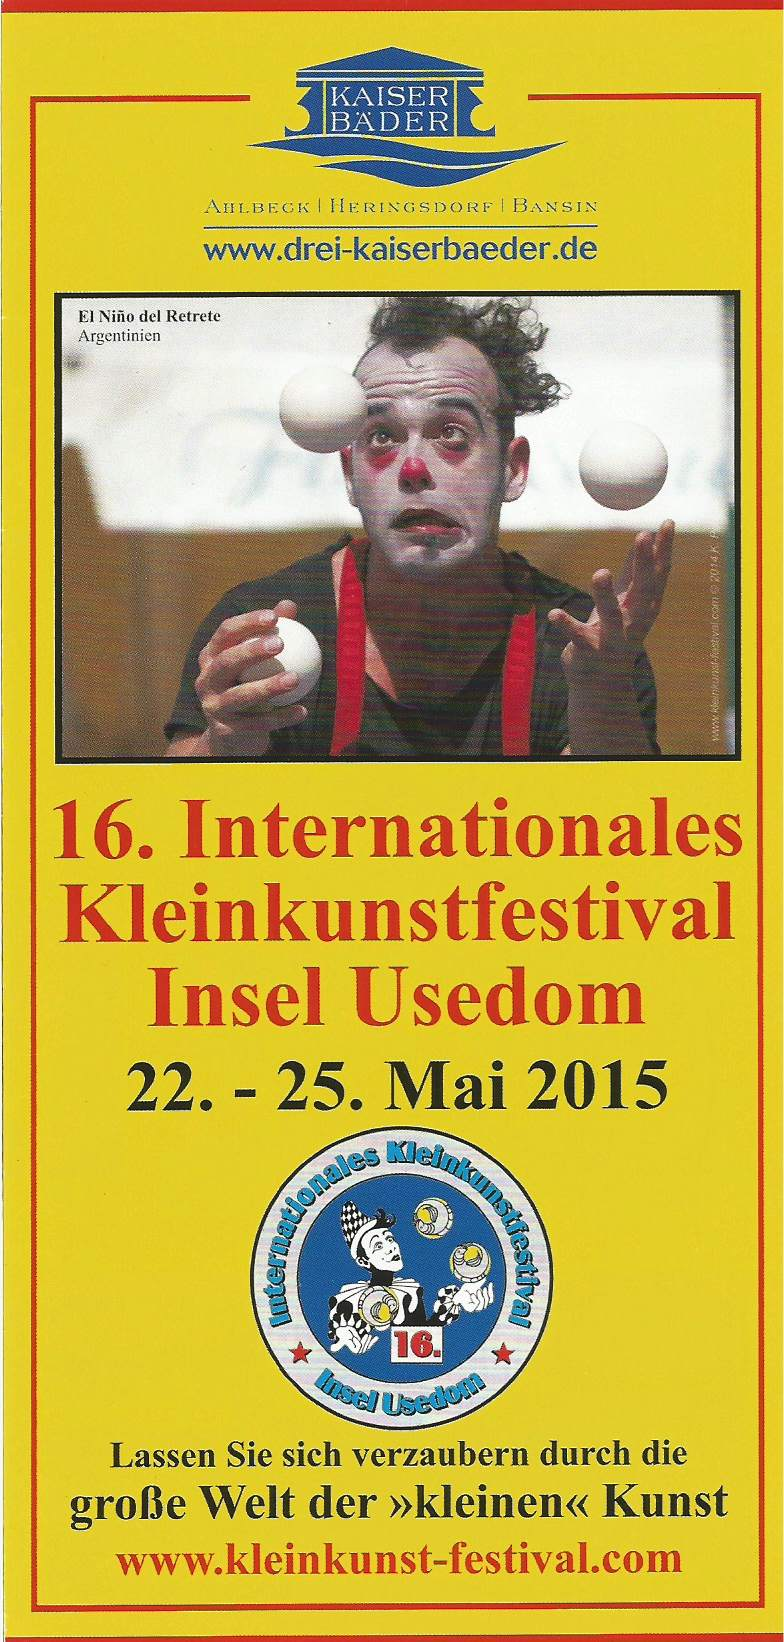 INTERNATIONALES KLEINKUNSTFESTIVAL